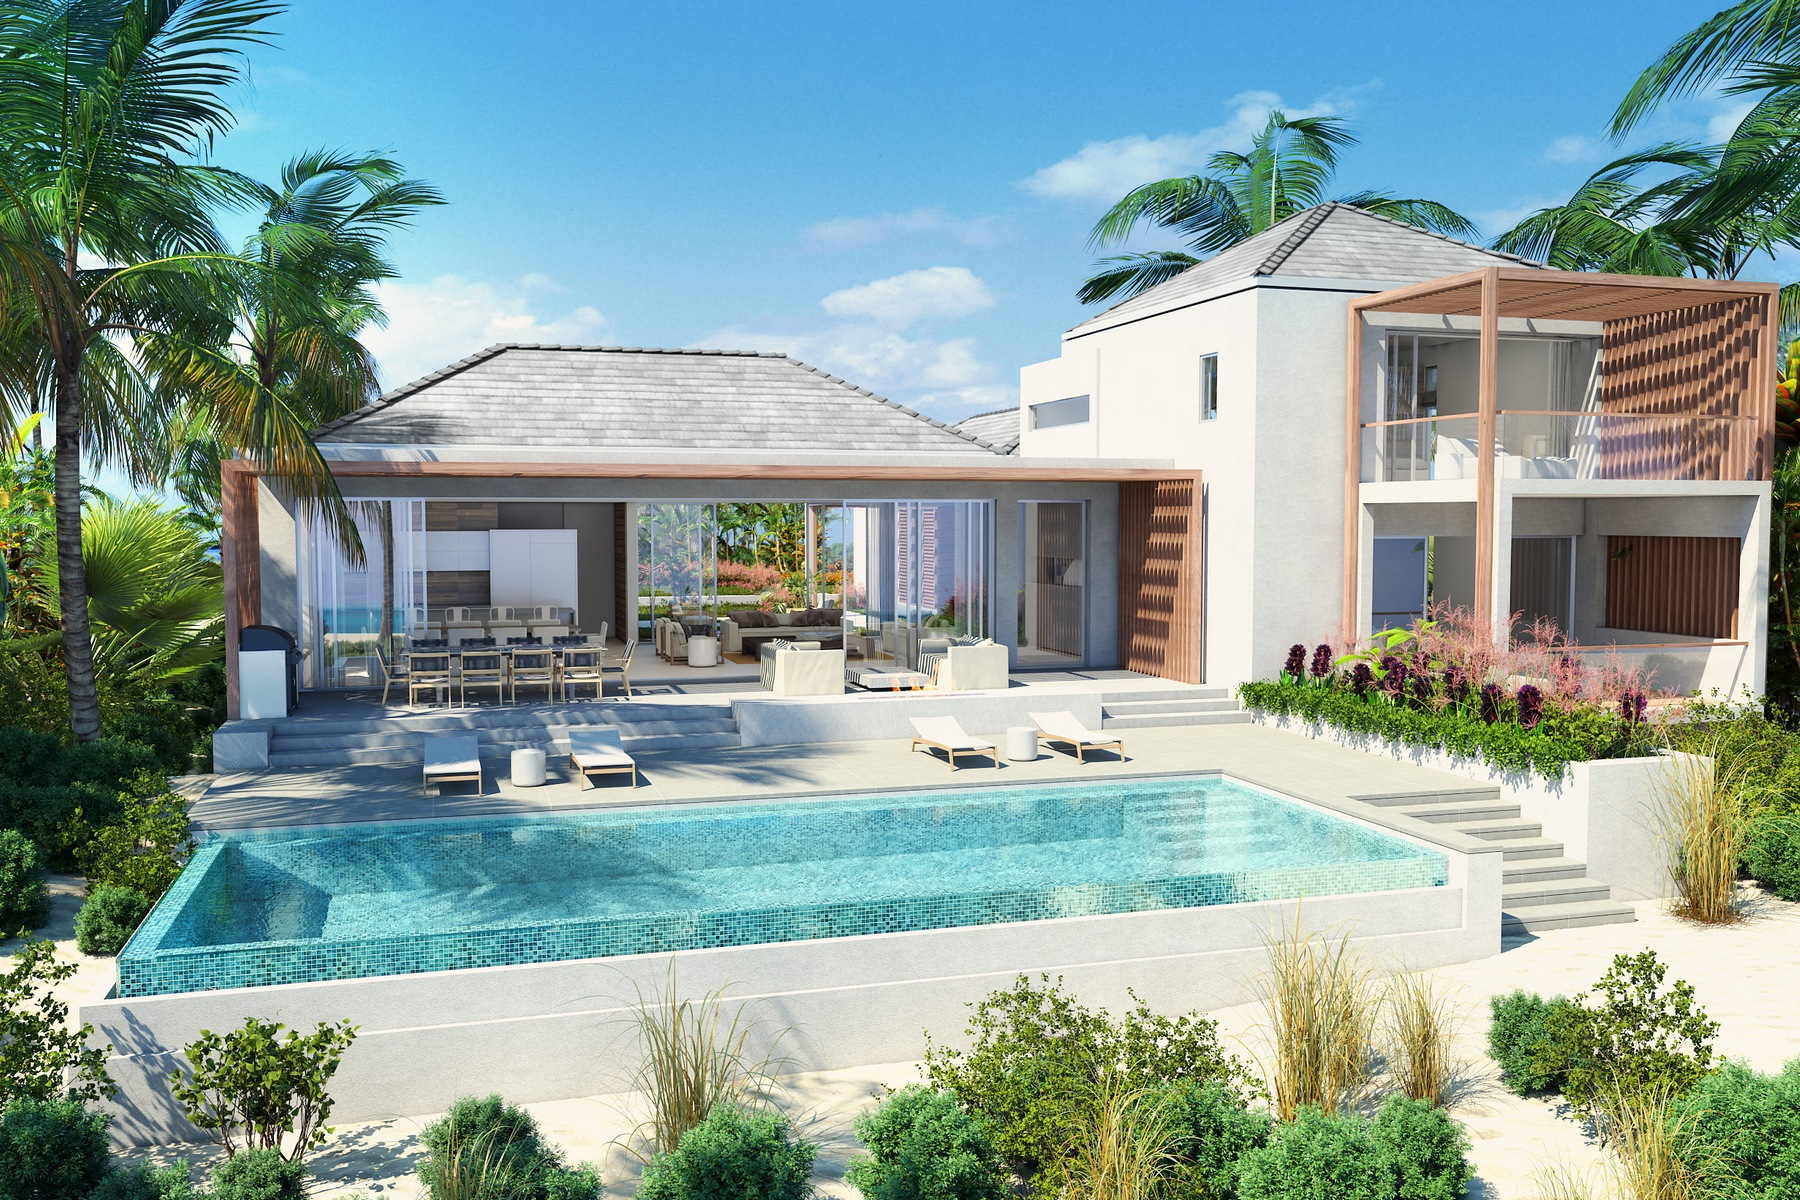 Single Family Home for Sale at BEACH ENCLAVE LONG BAY - Design One 4B Beachfront Long Bay, Providenciales, TCI Turks And Caicos Islands